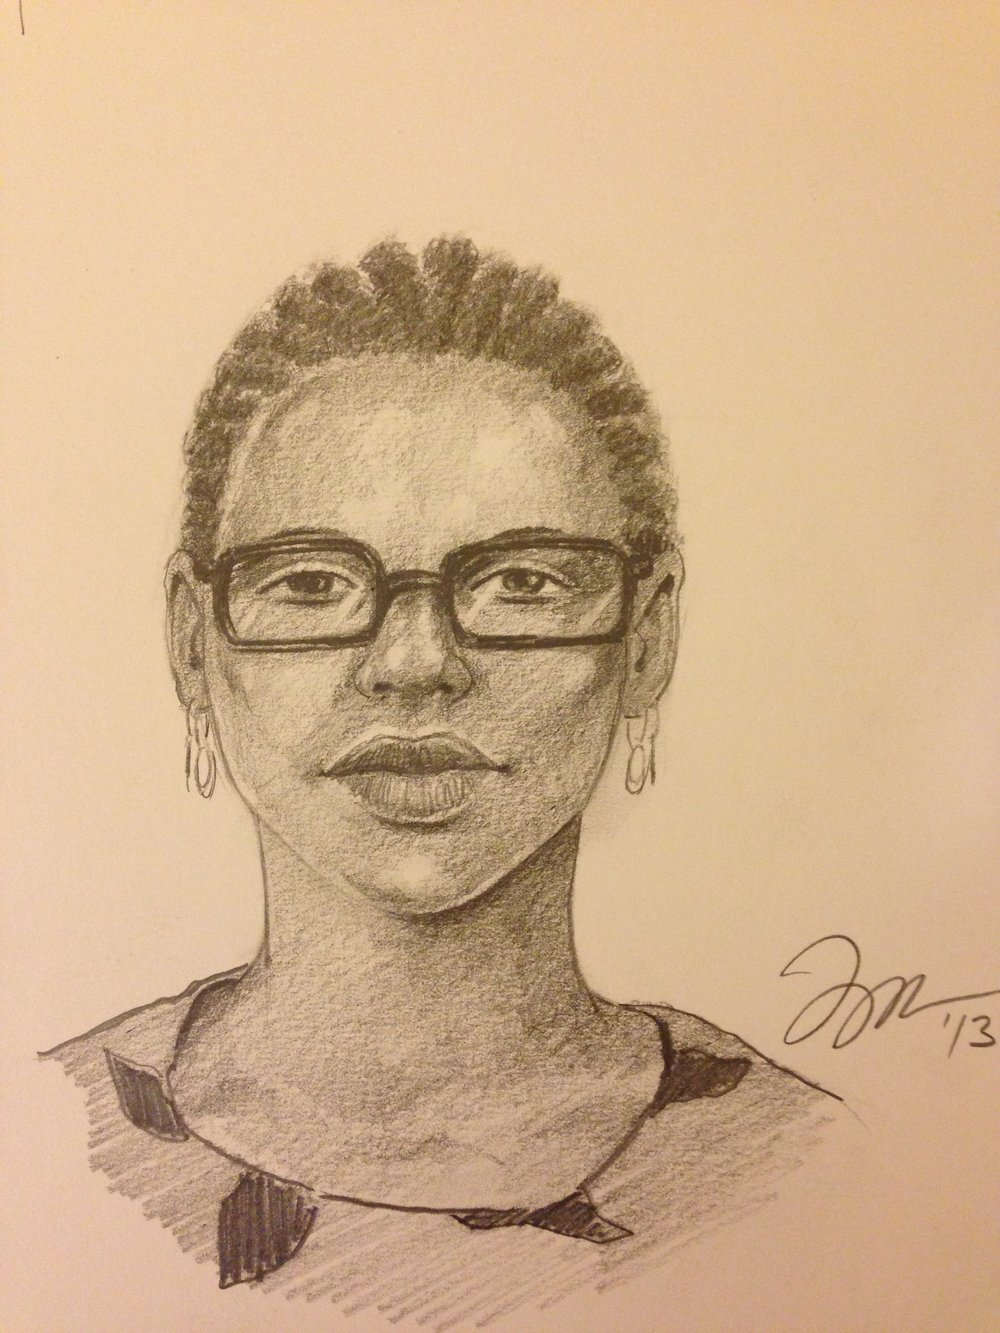 "Zamora, Gil.  Perspective Sketch: Lady with glasses . 2013. Graphite on paper, 11"" x 14"". Private collection."